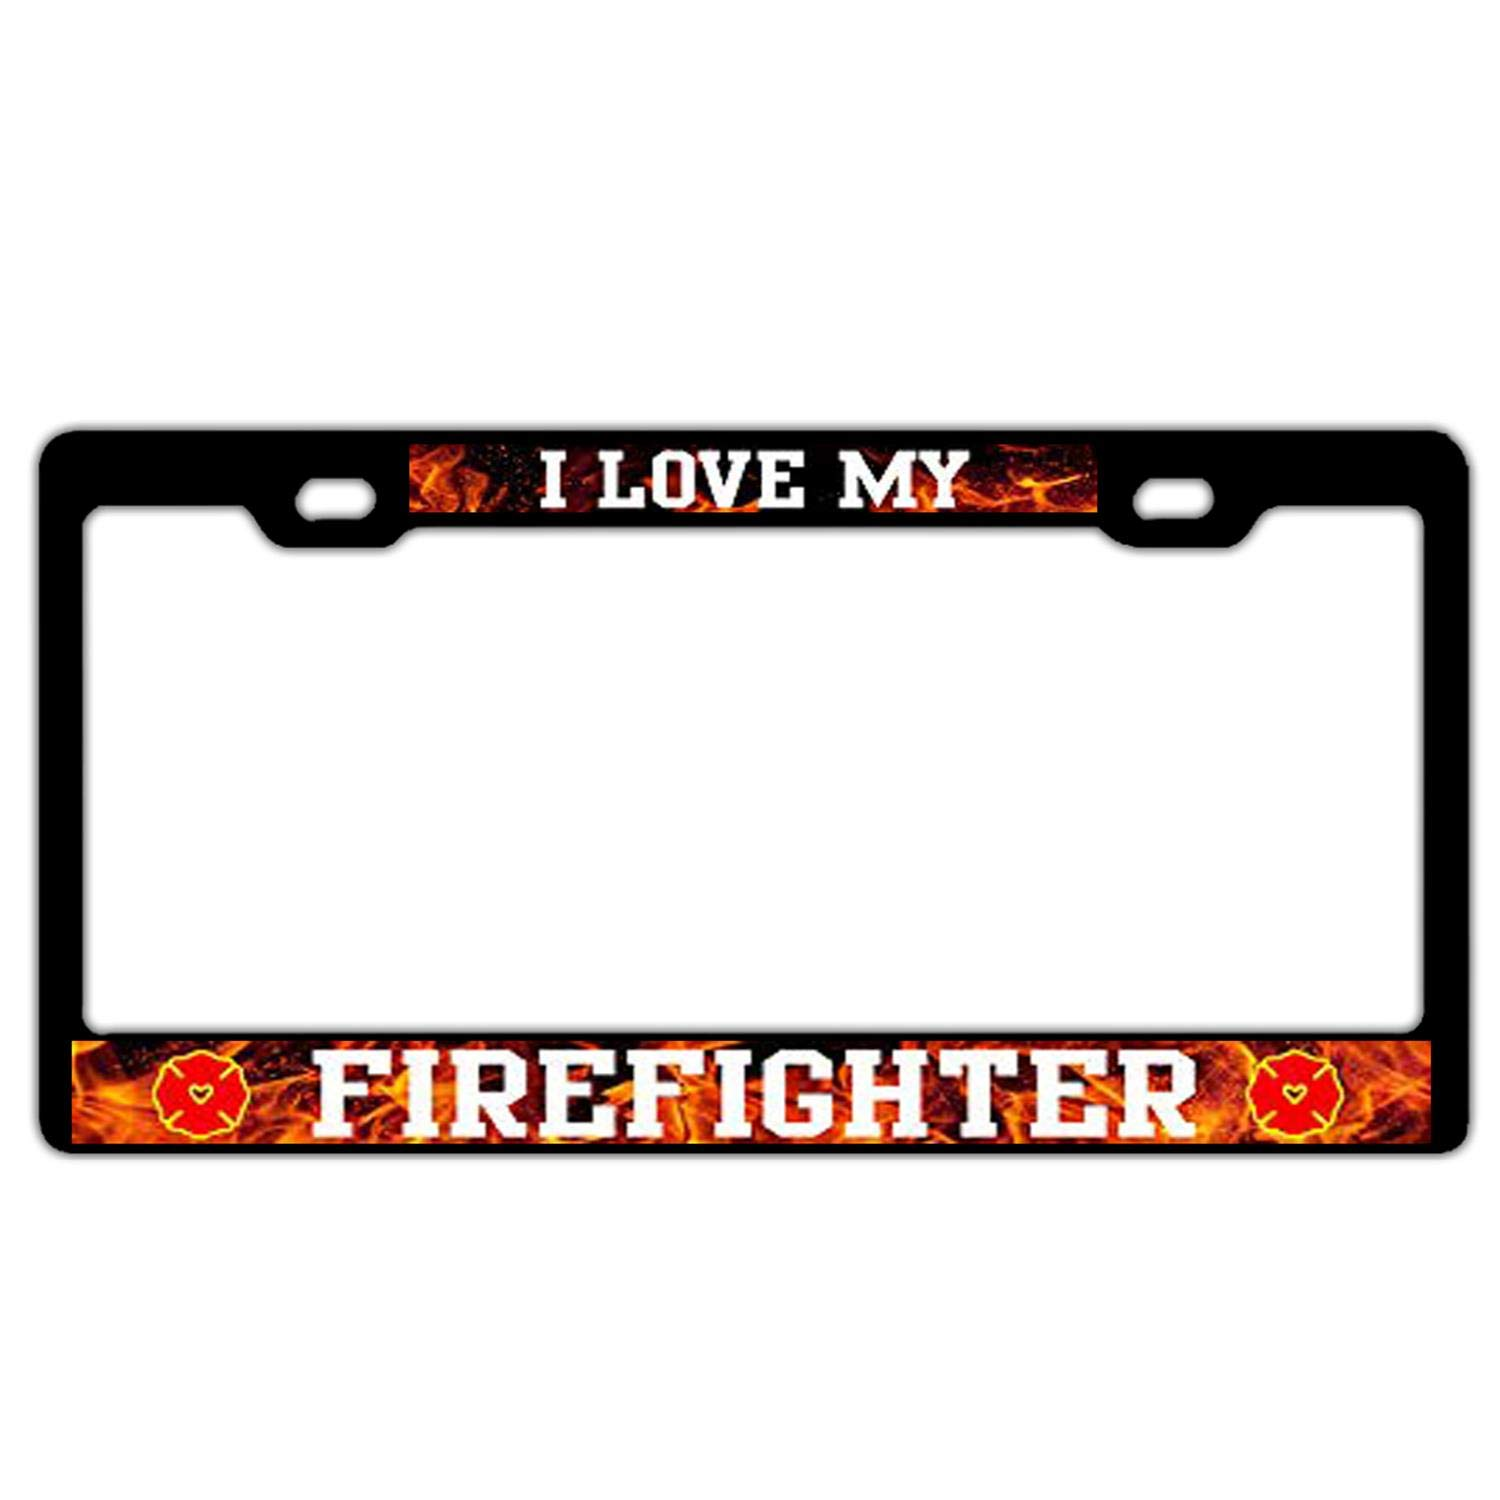 101st Airborne Division Veteran Aluminum Metal Custom Car Auto License Plate Frame Holder Funny Humor Standard Size for US Vehicles with Screws GTBAO